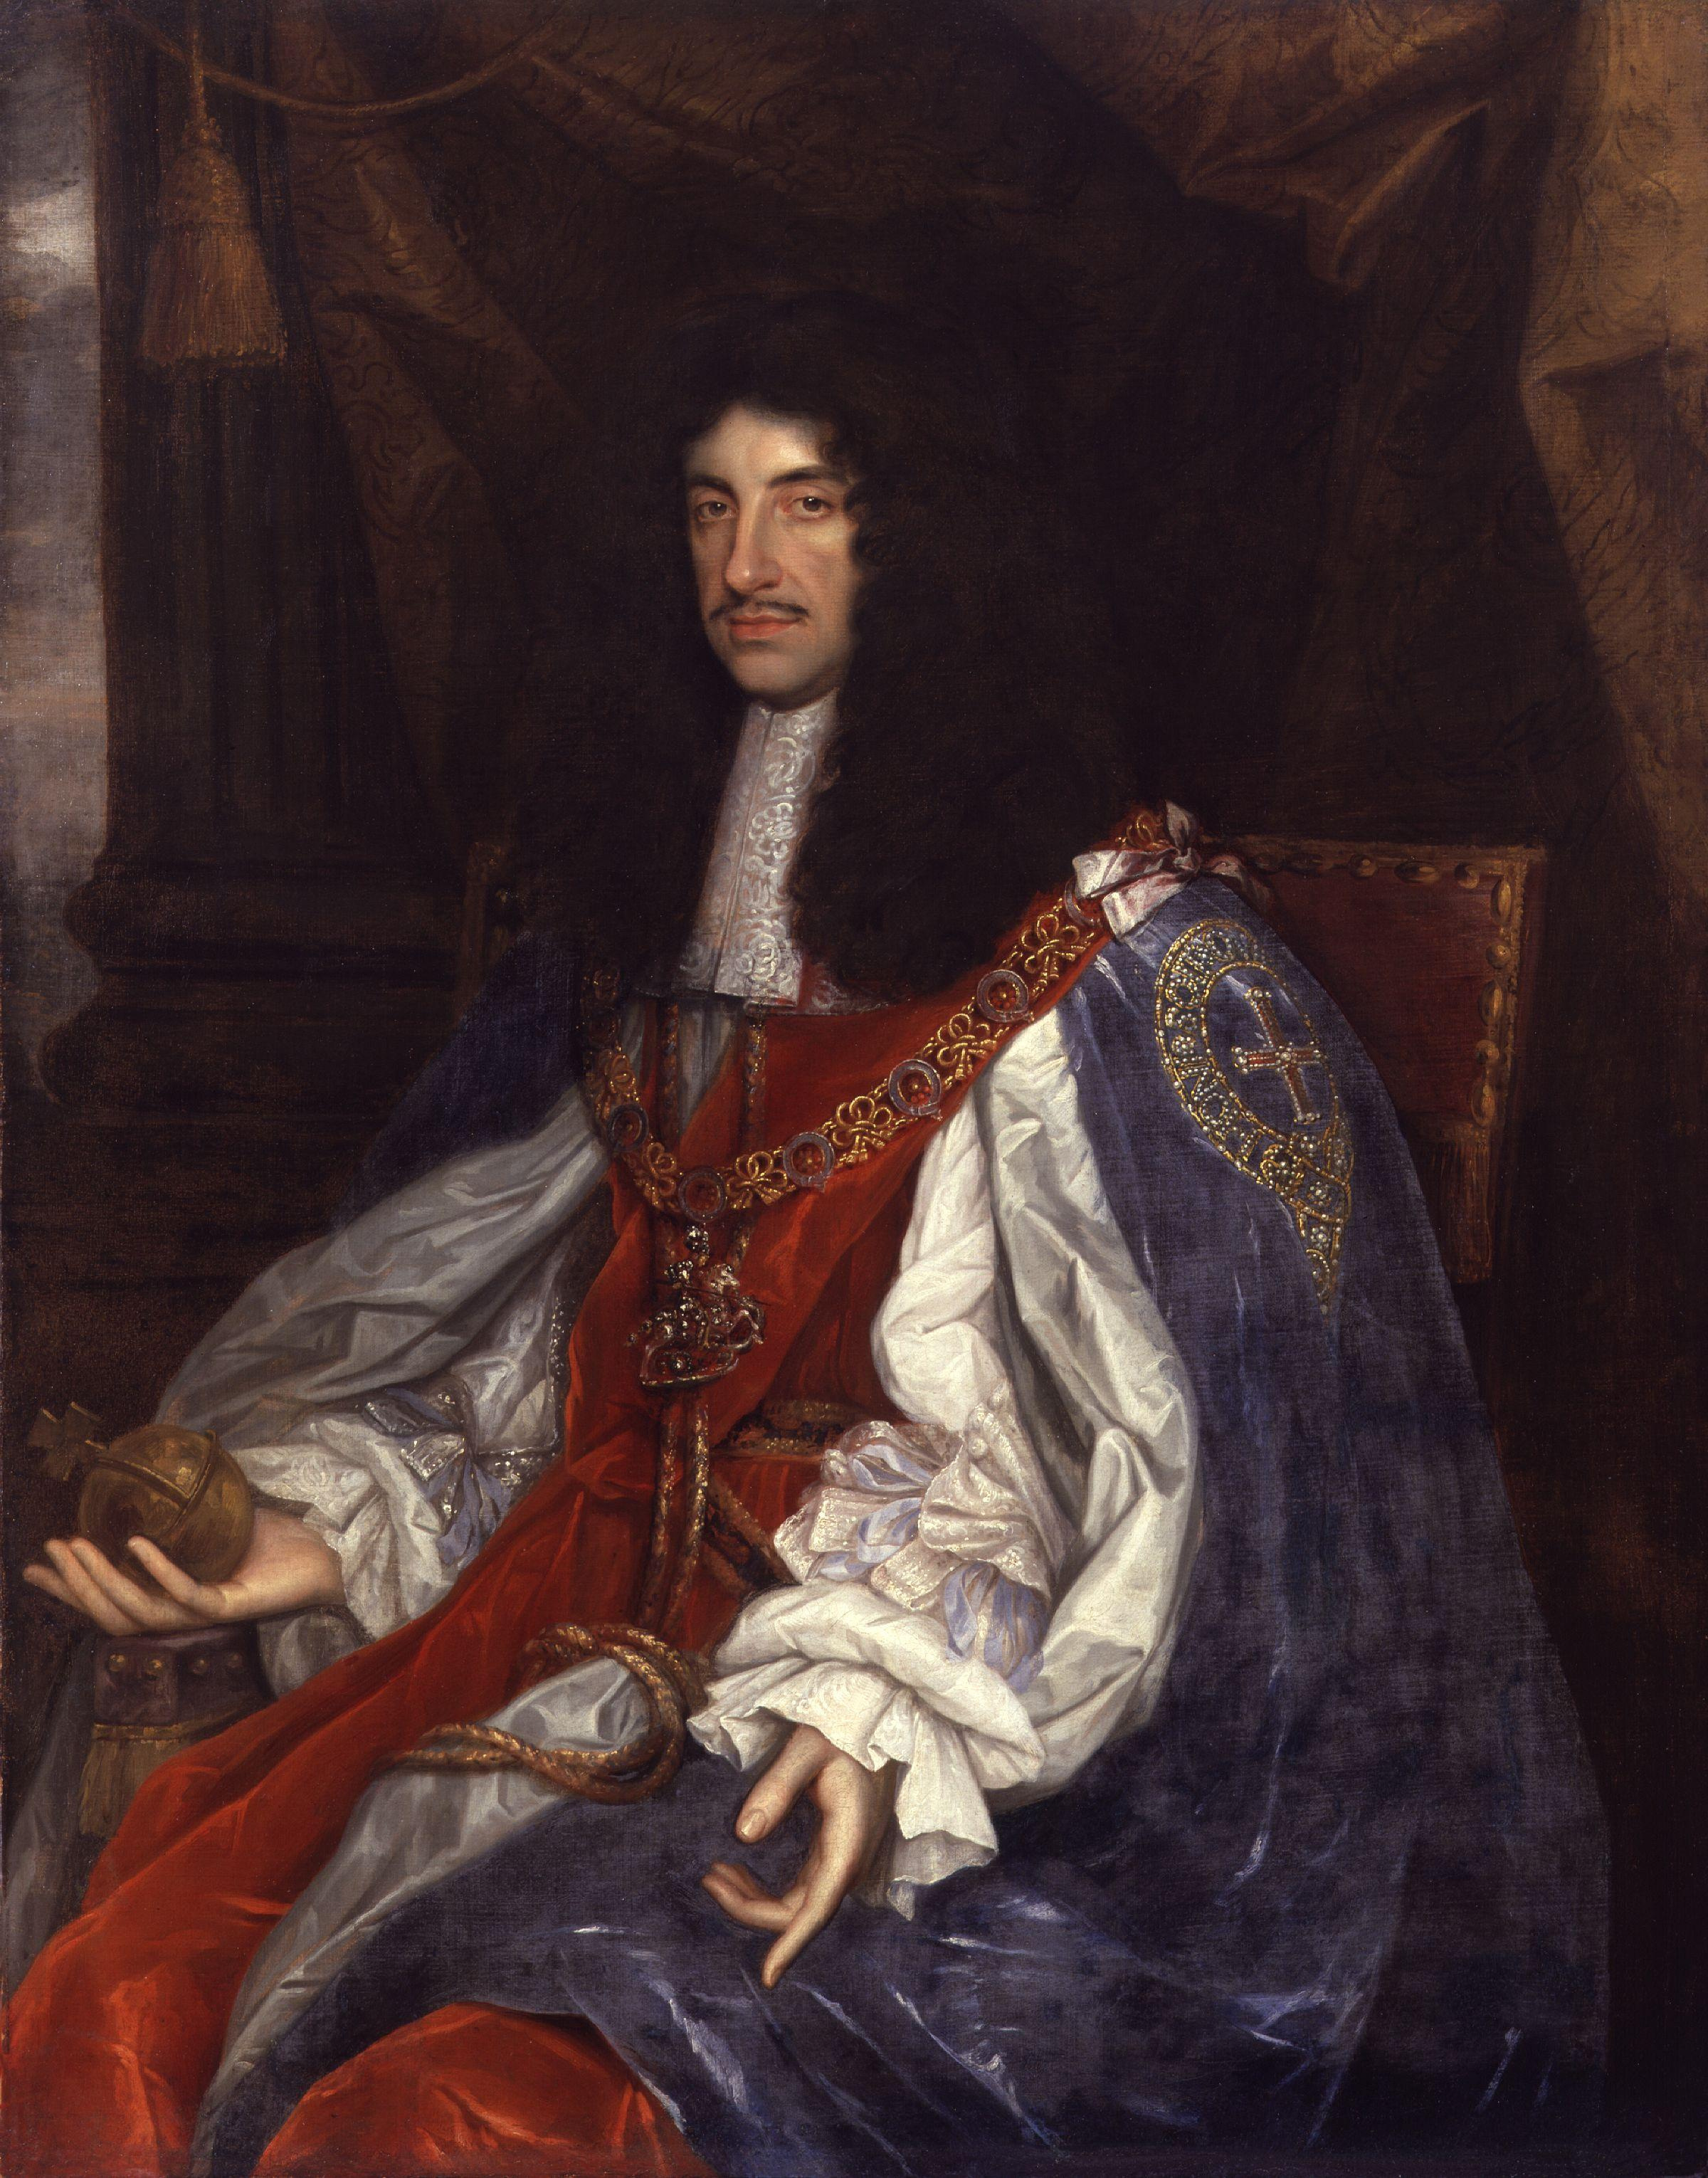 Charles II of England - Wikipedia